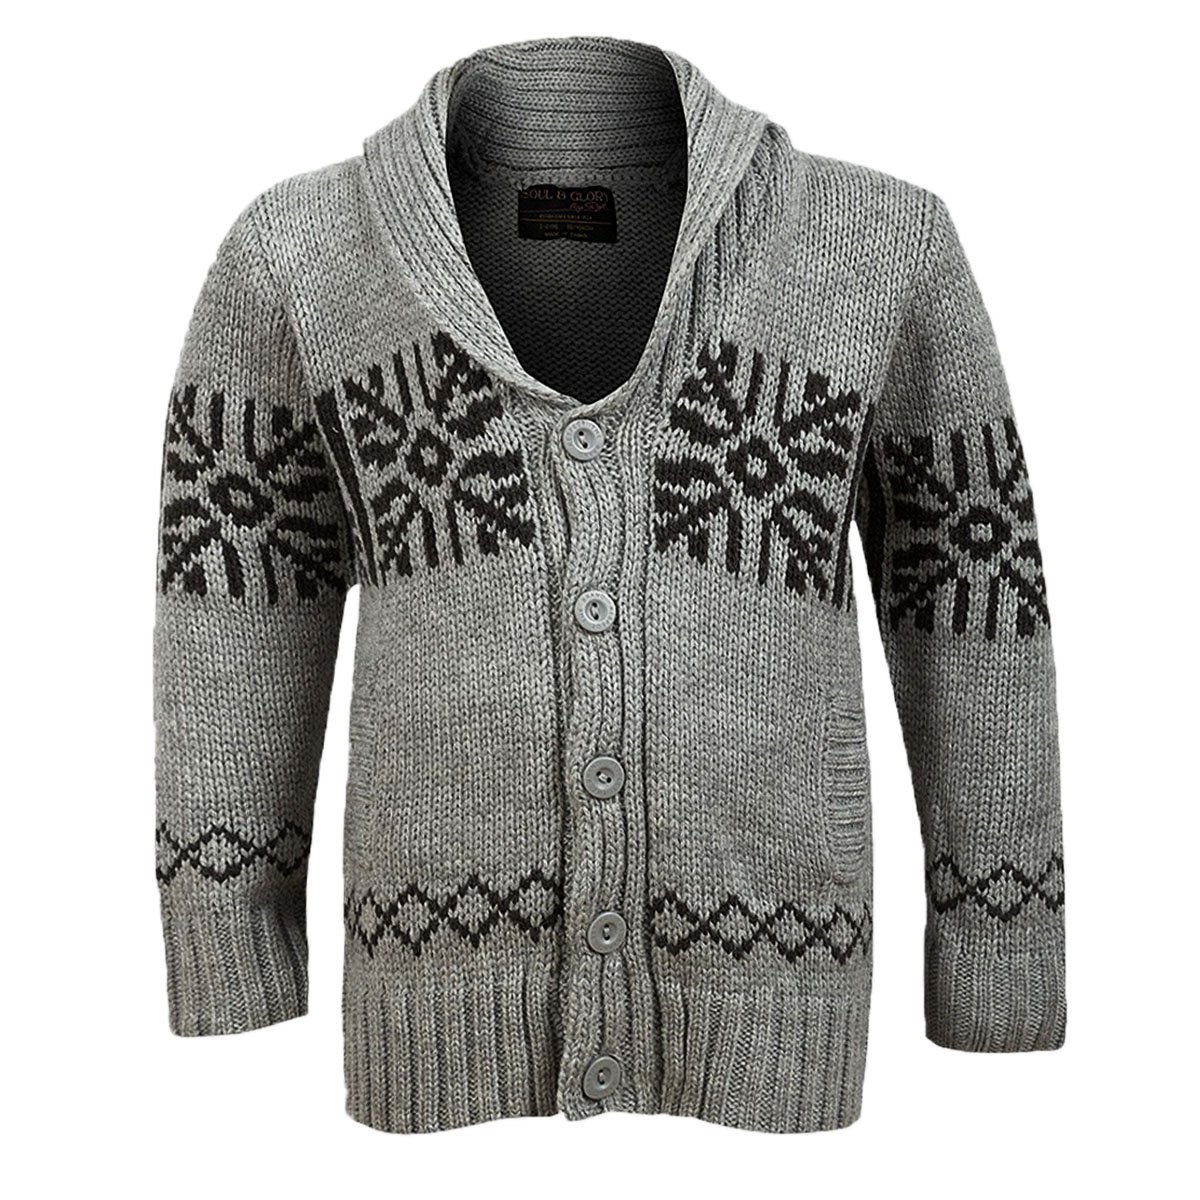 New Kids Boys Christmas Isle pattern Warm Soul & Glory Cardigan Top Age 3-8 Years Light Grey)